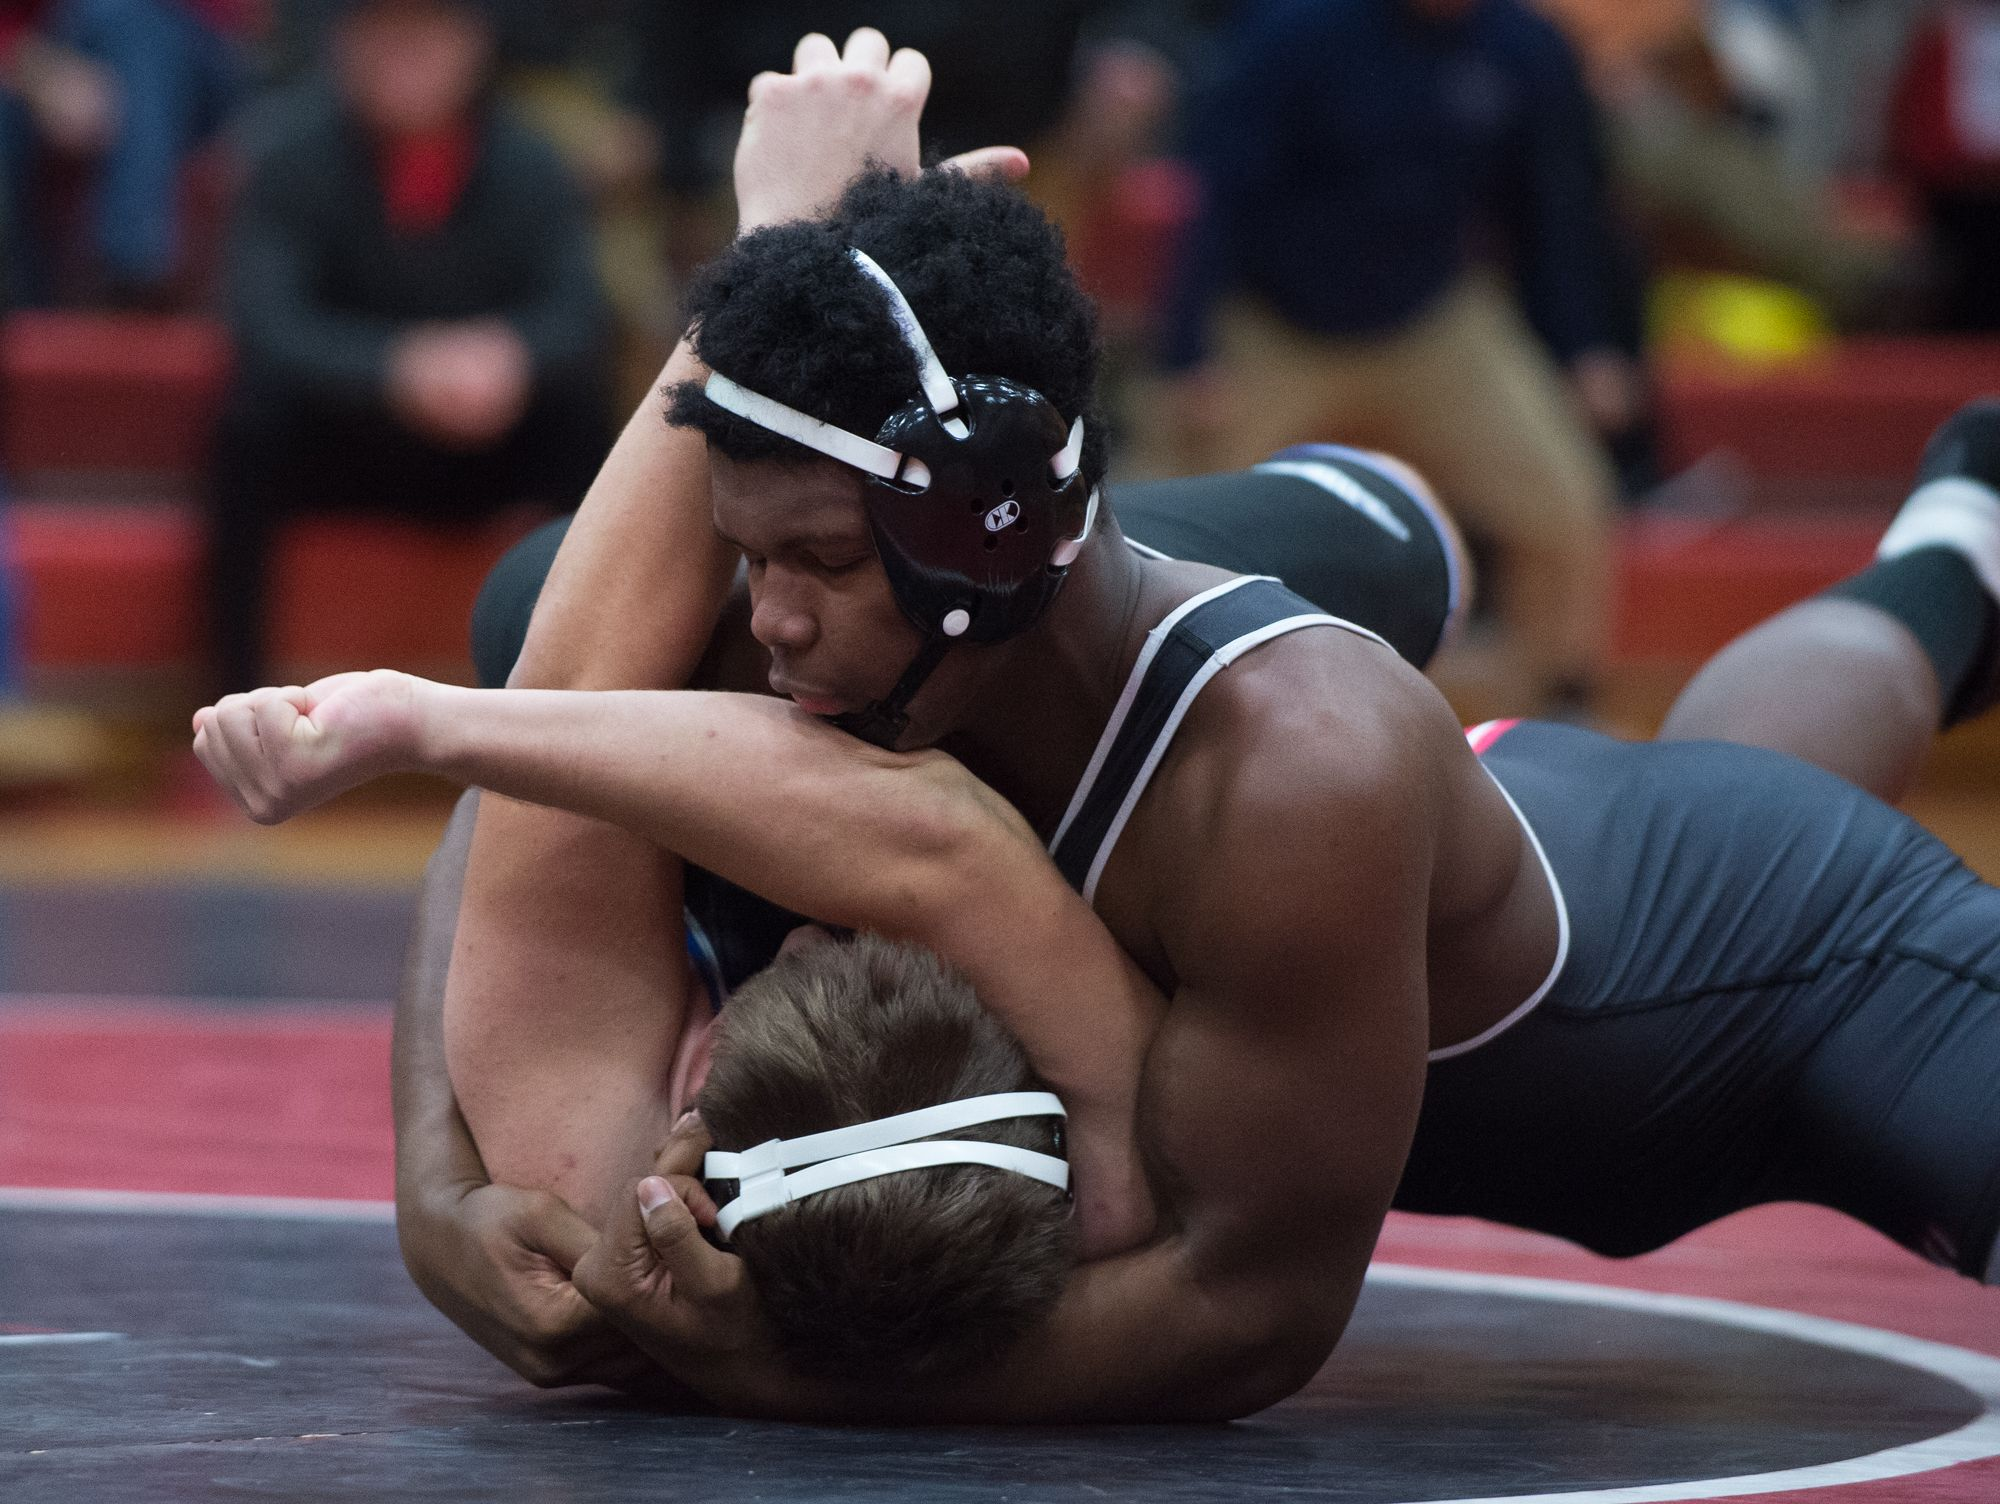 William Penn's Charlie Hope (top) pins Wilmington Charter's Kyle Lank (bottom) in the 285 pound final match to take a 39-31 win over Charter at William Penn High School.